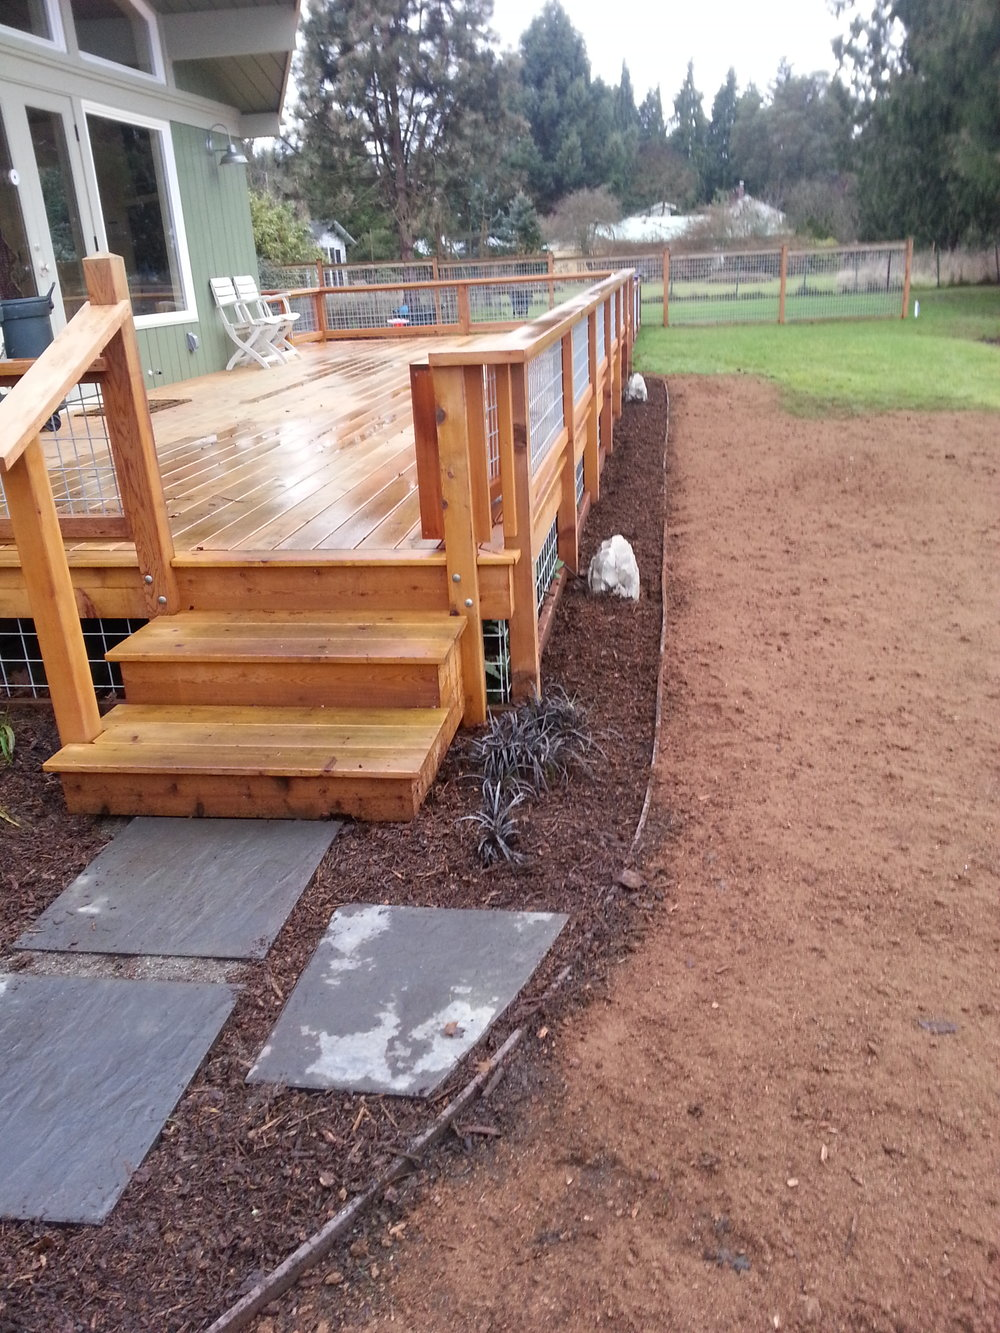 Lawn and Deck.jpg